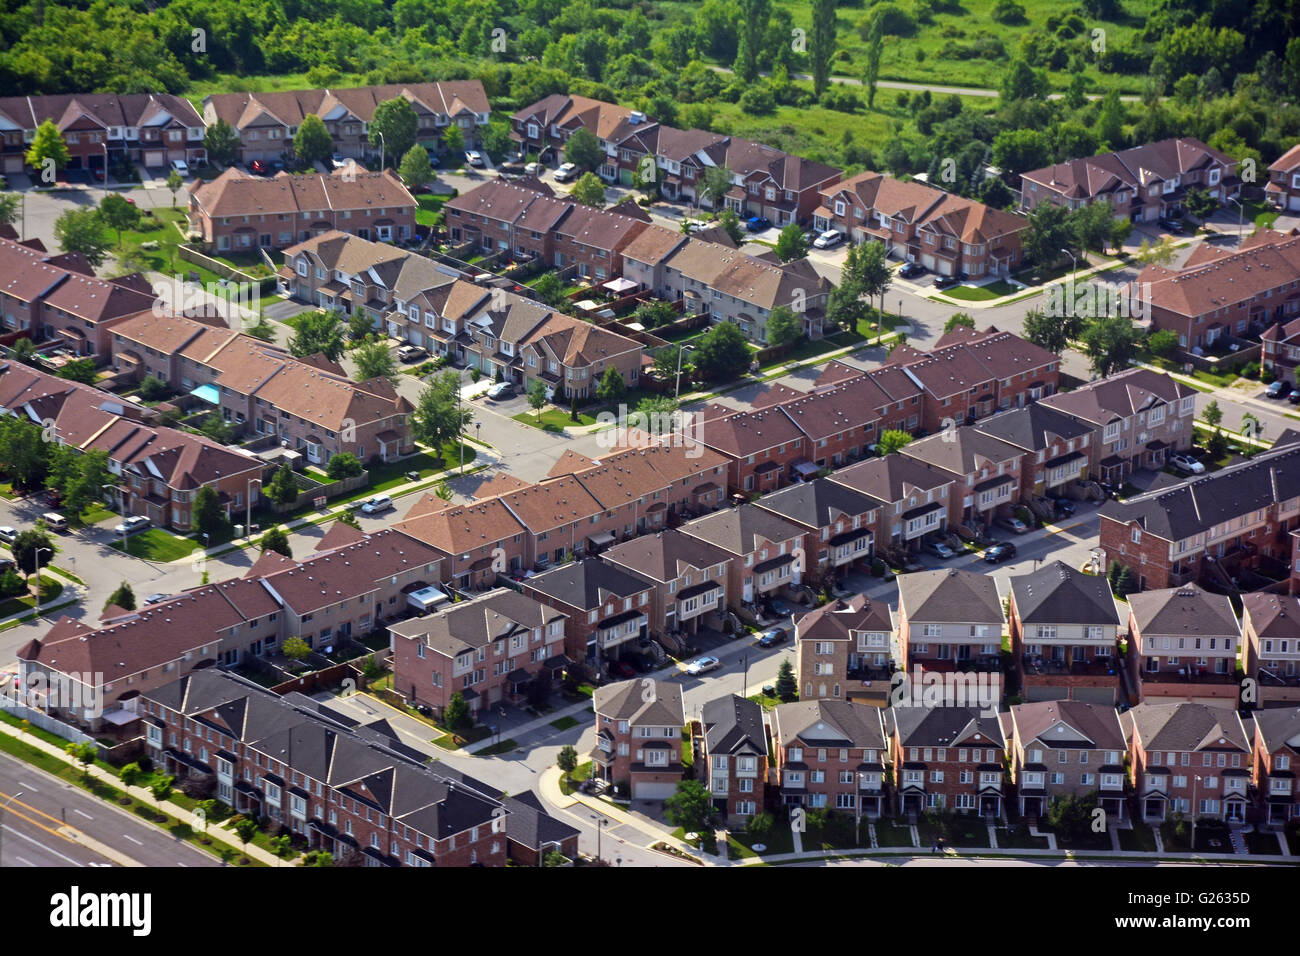 Residential area suburbs, Aerial view, Canada - Stock Image